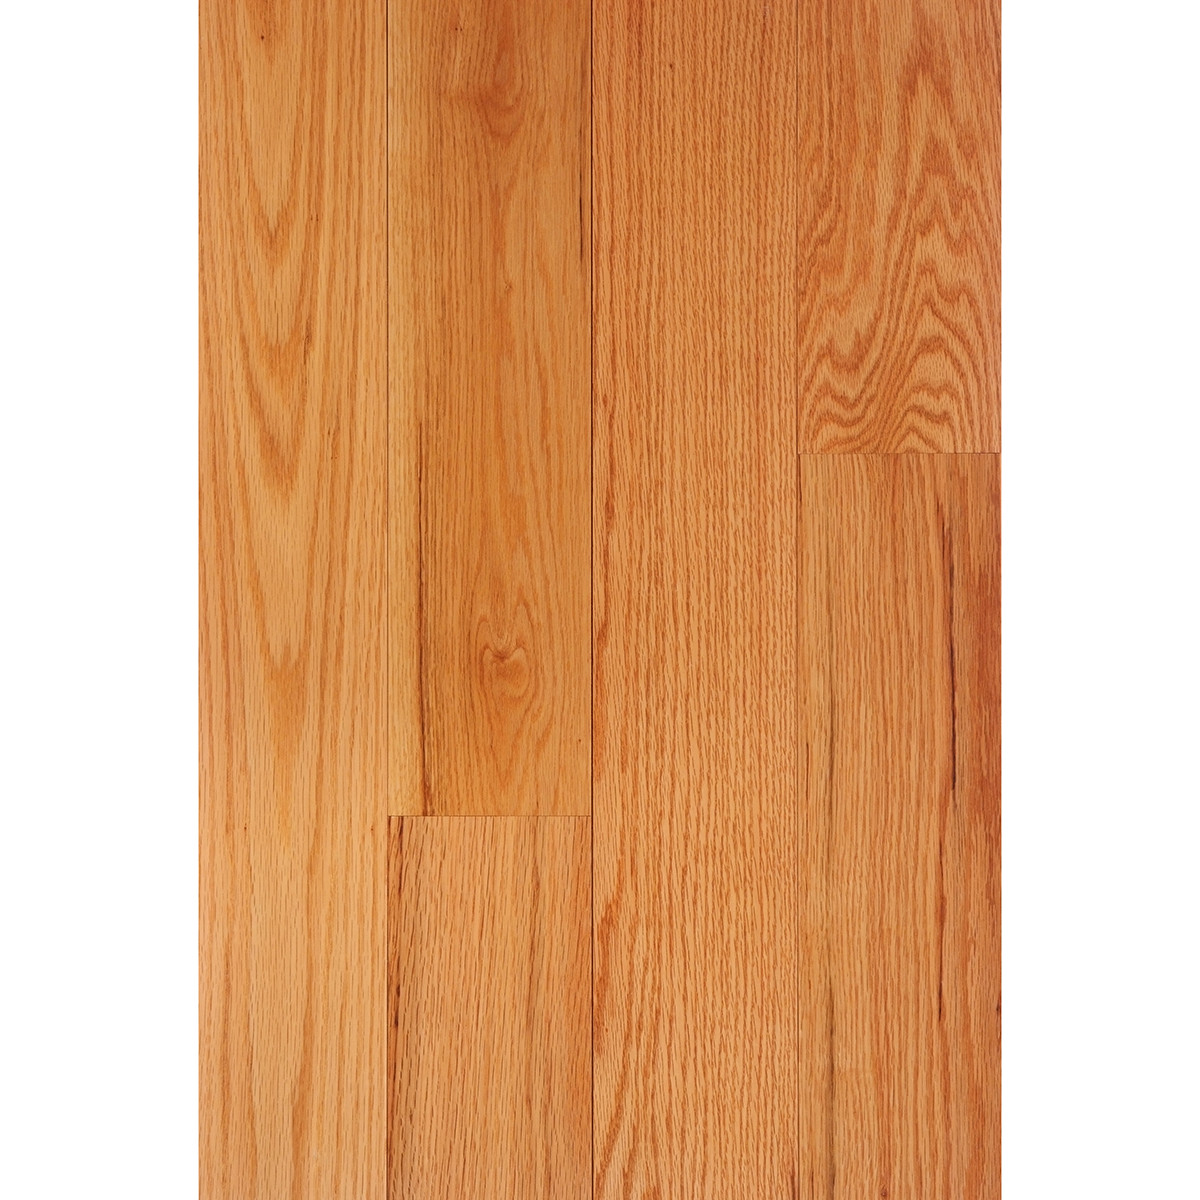 eastern hardwood flooring reviews of red oak 3 4 x 5 select grade flooring within other items in this category